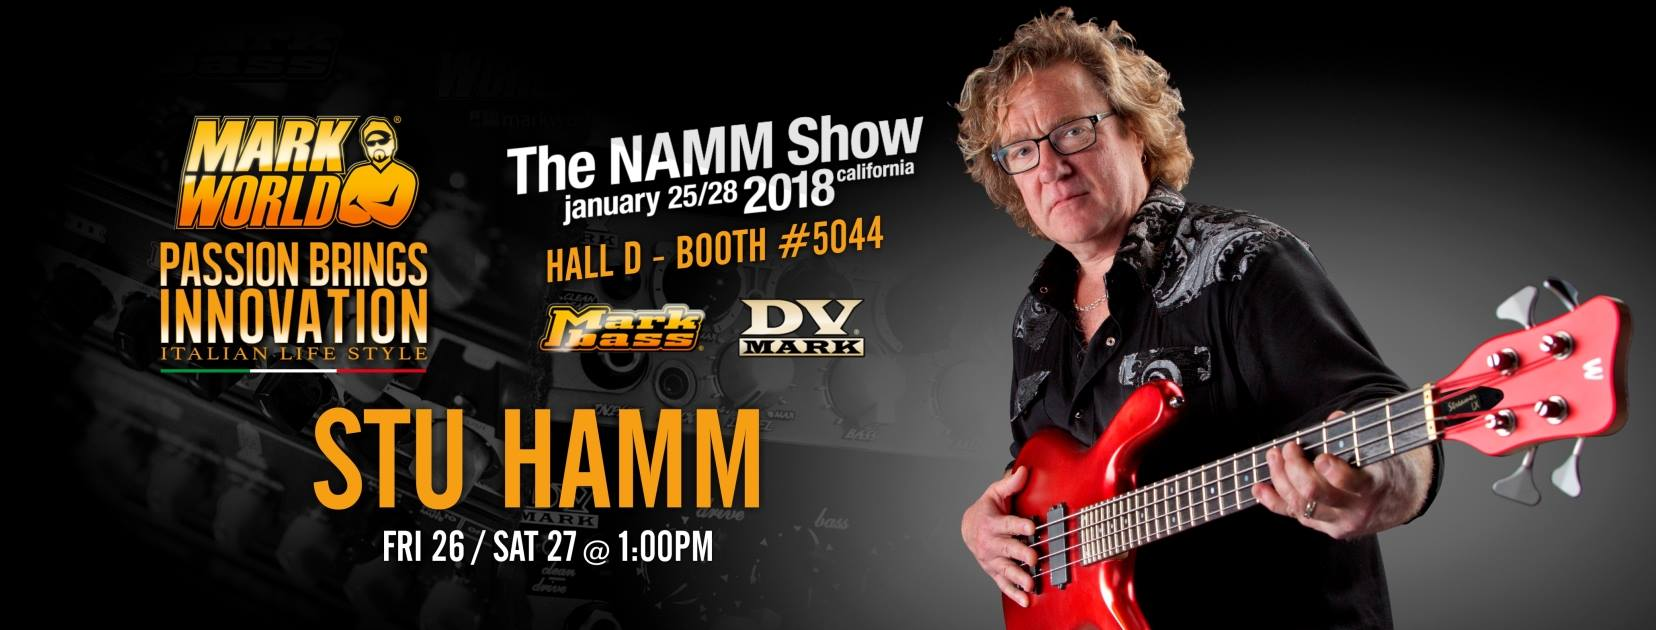 Stu Hamm Mark Bass show Namm 2018